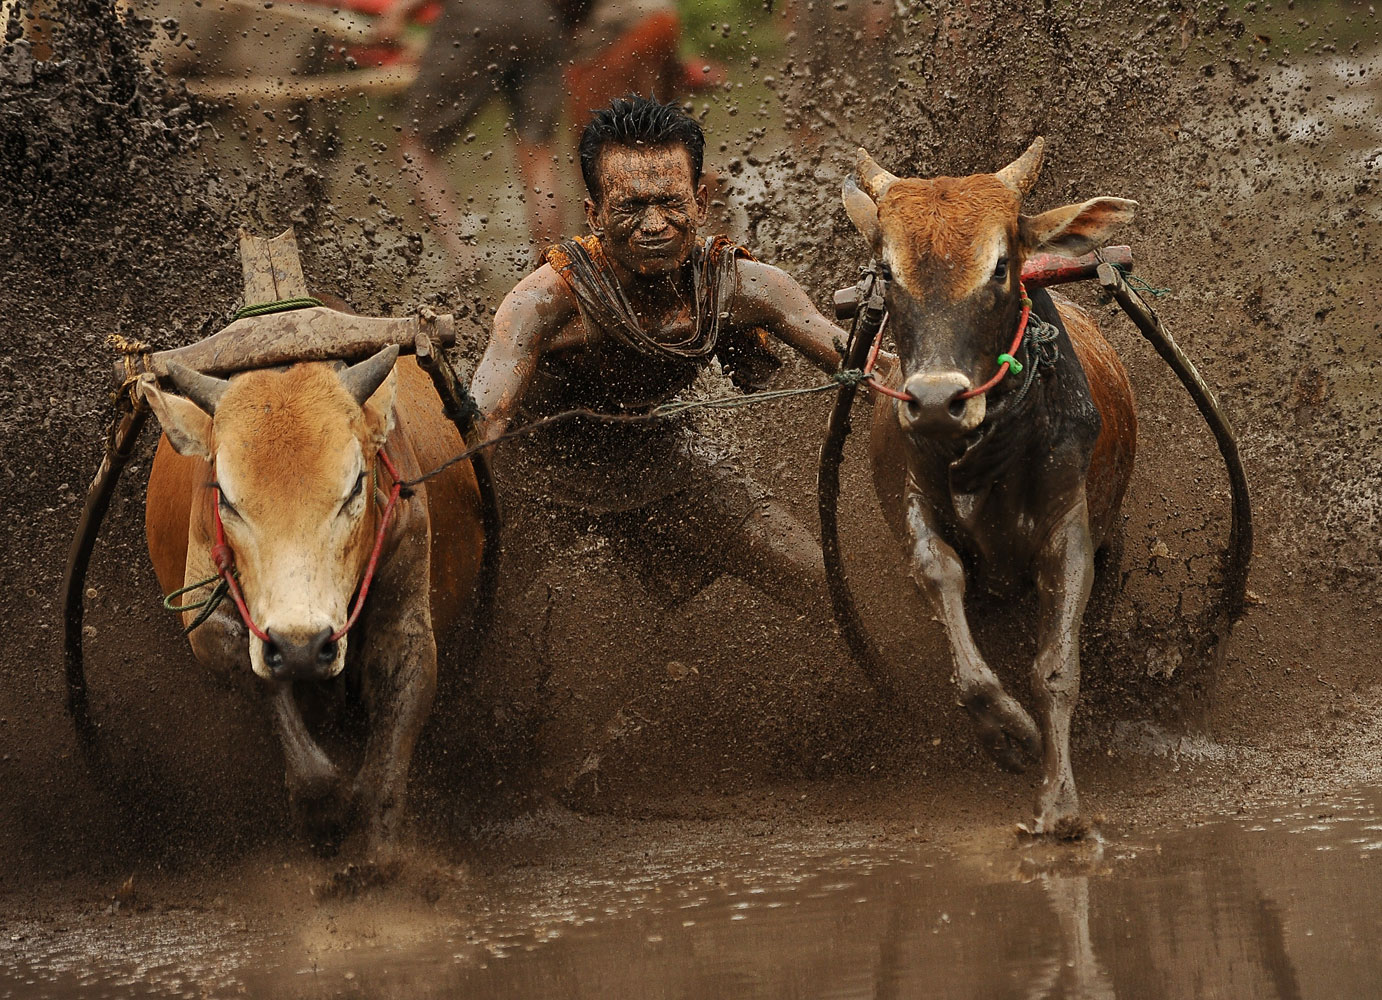 A jockey spurs cows in a Pacu Jawi (traditional cow racing), in Batusangkar Indonesia.